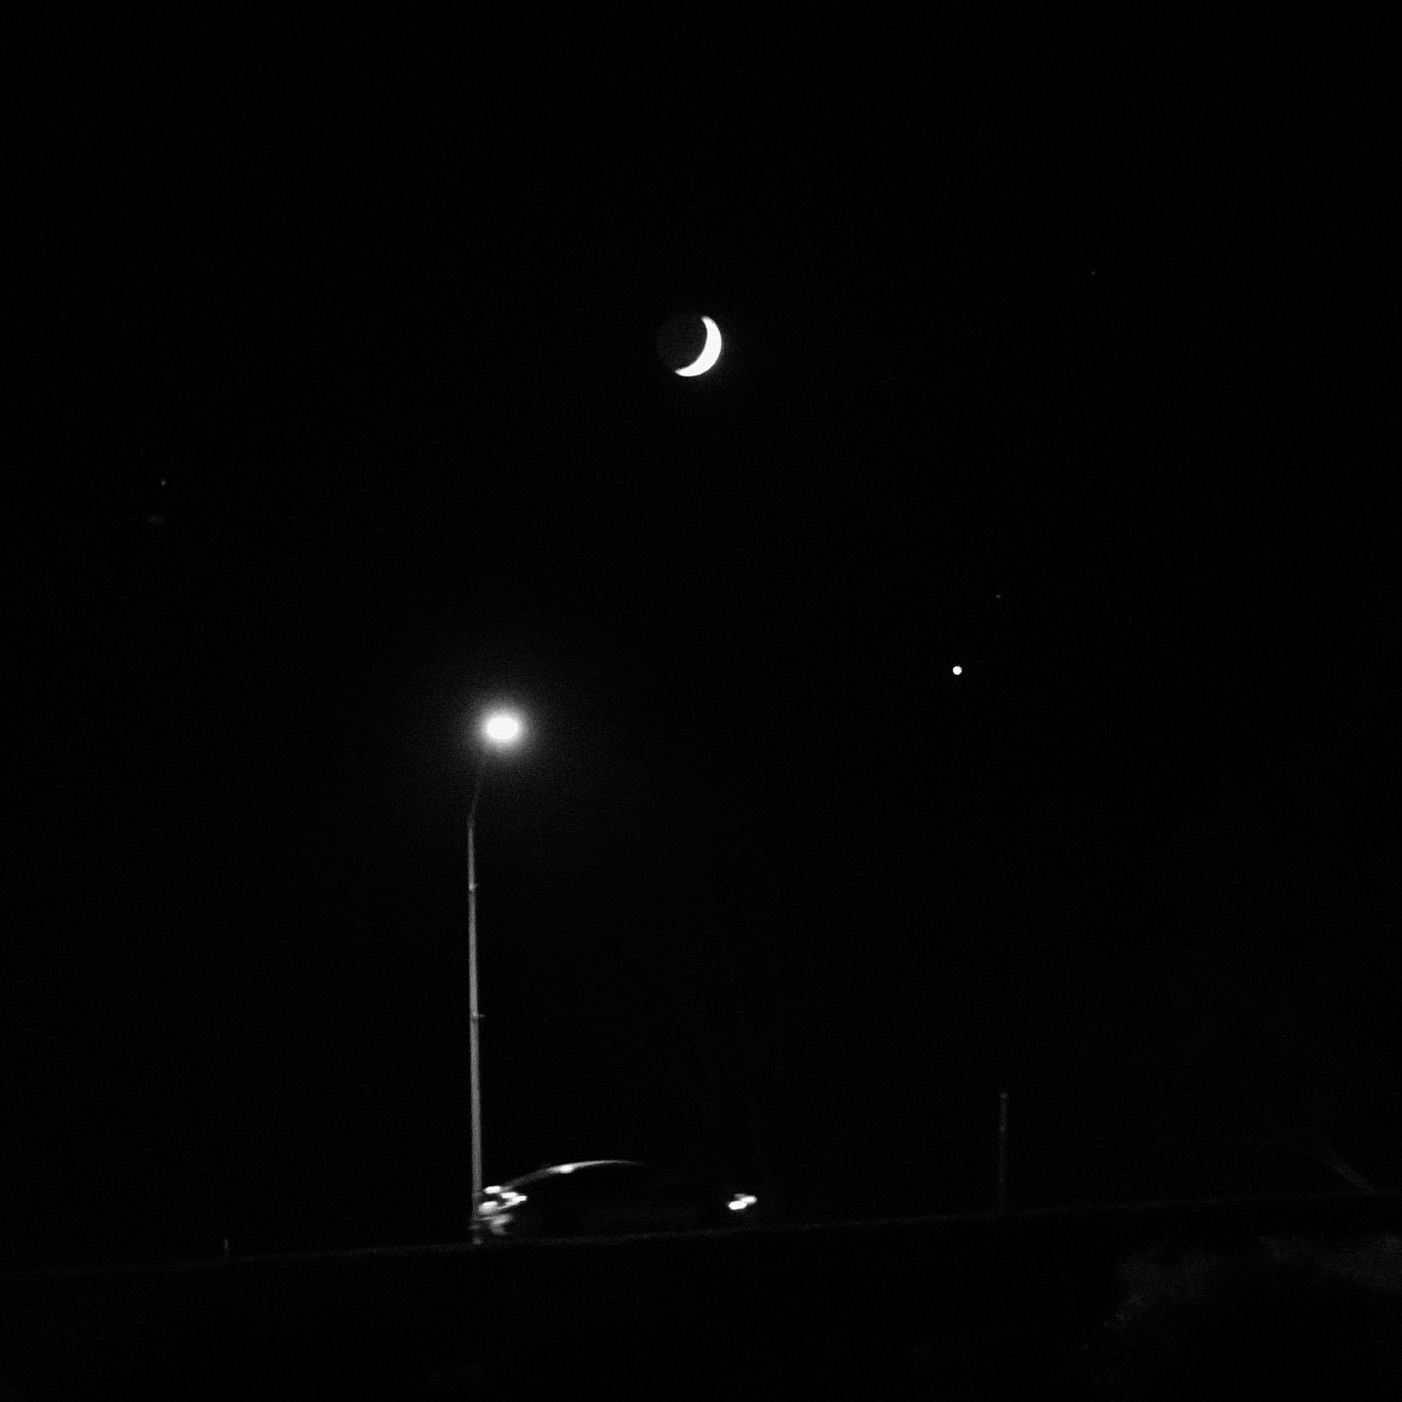 waxing crescent moon, venus, street light, and a car driving up a bridge. black and white photo.